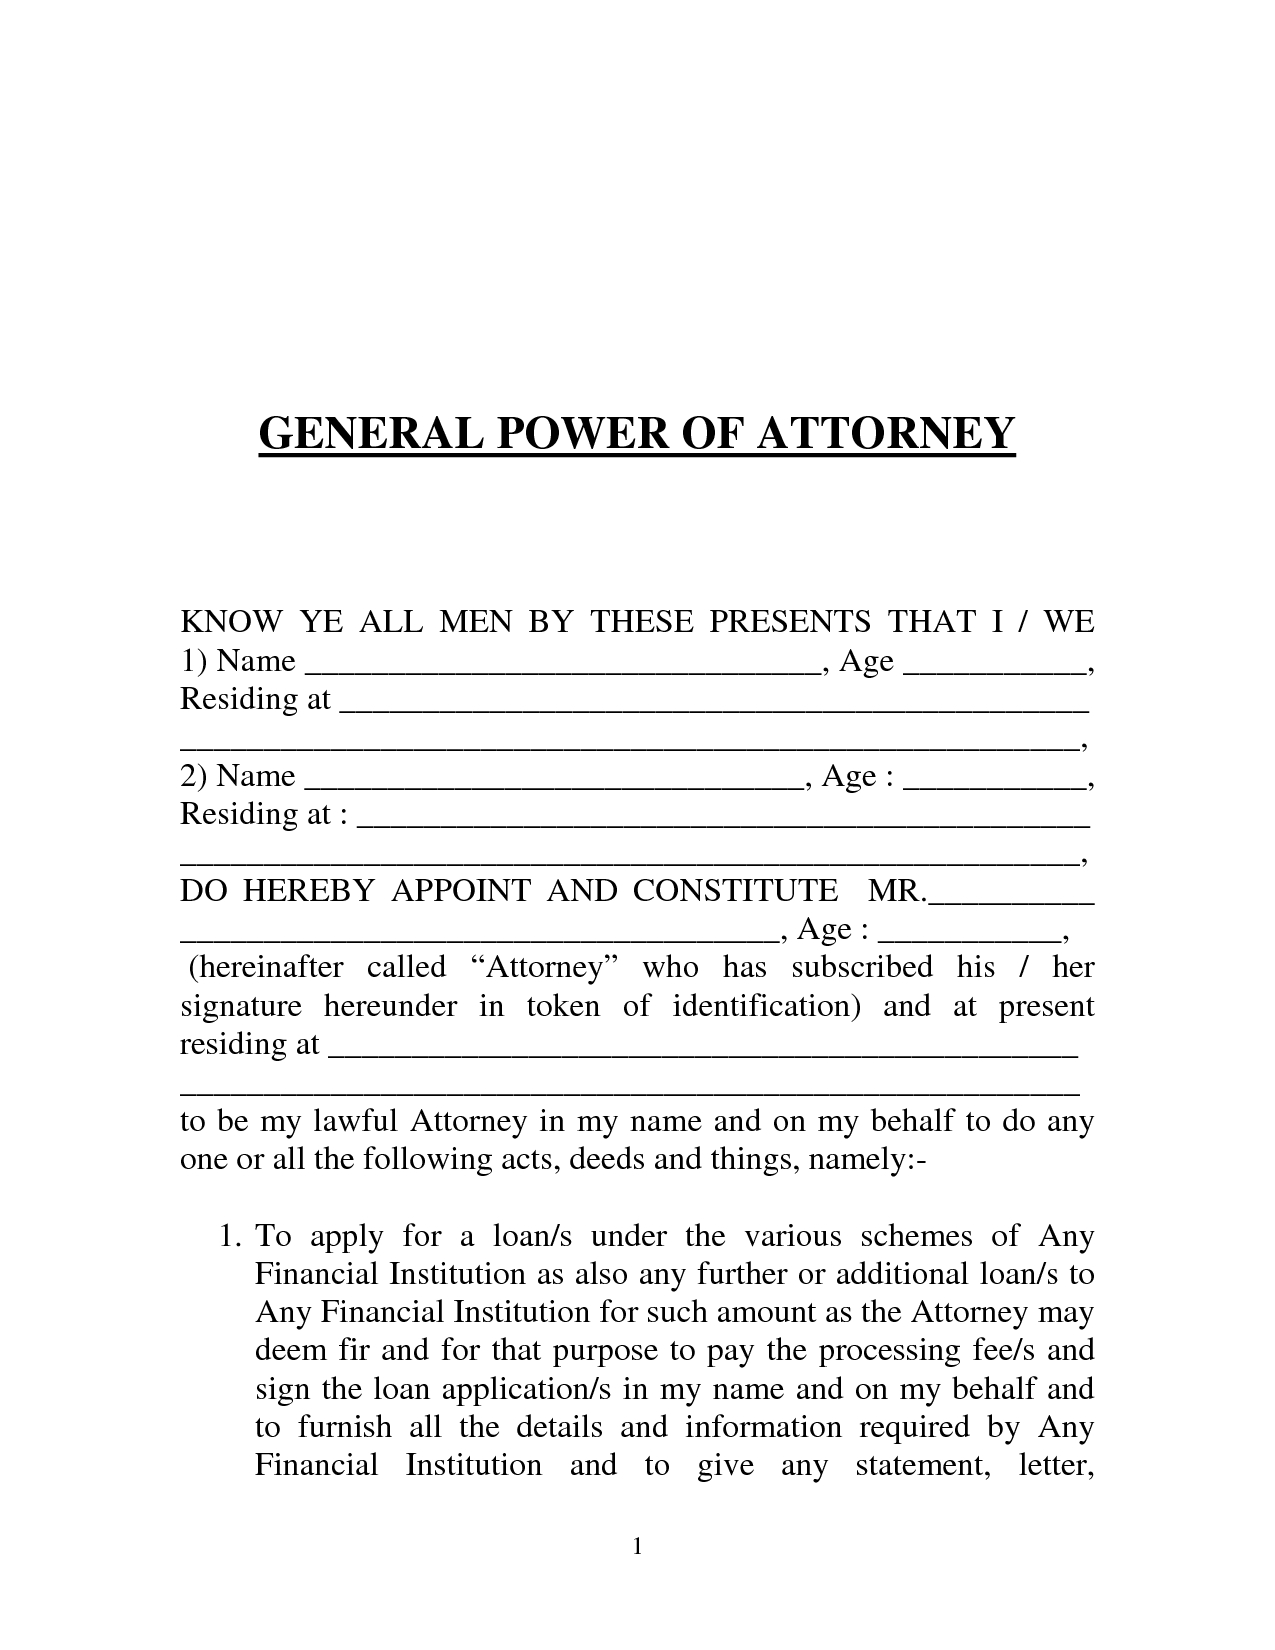 Simple Power Of attorney Letter Template - General Power attorney form India by Prettytulips Letter Of